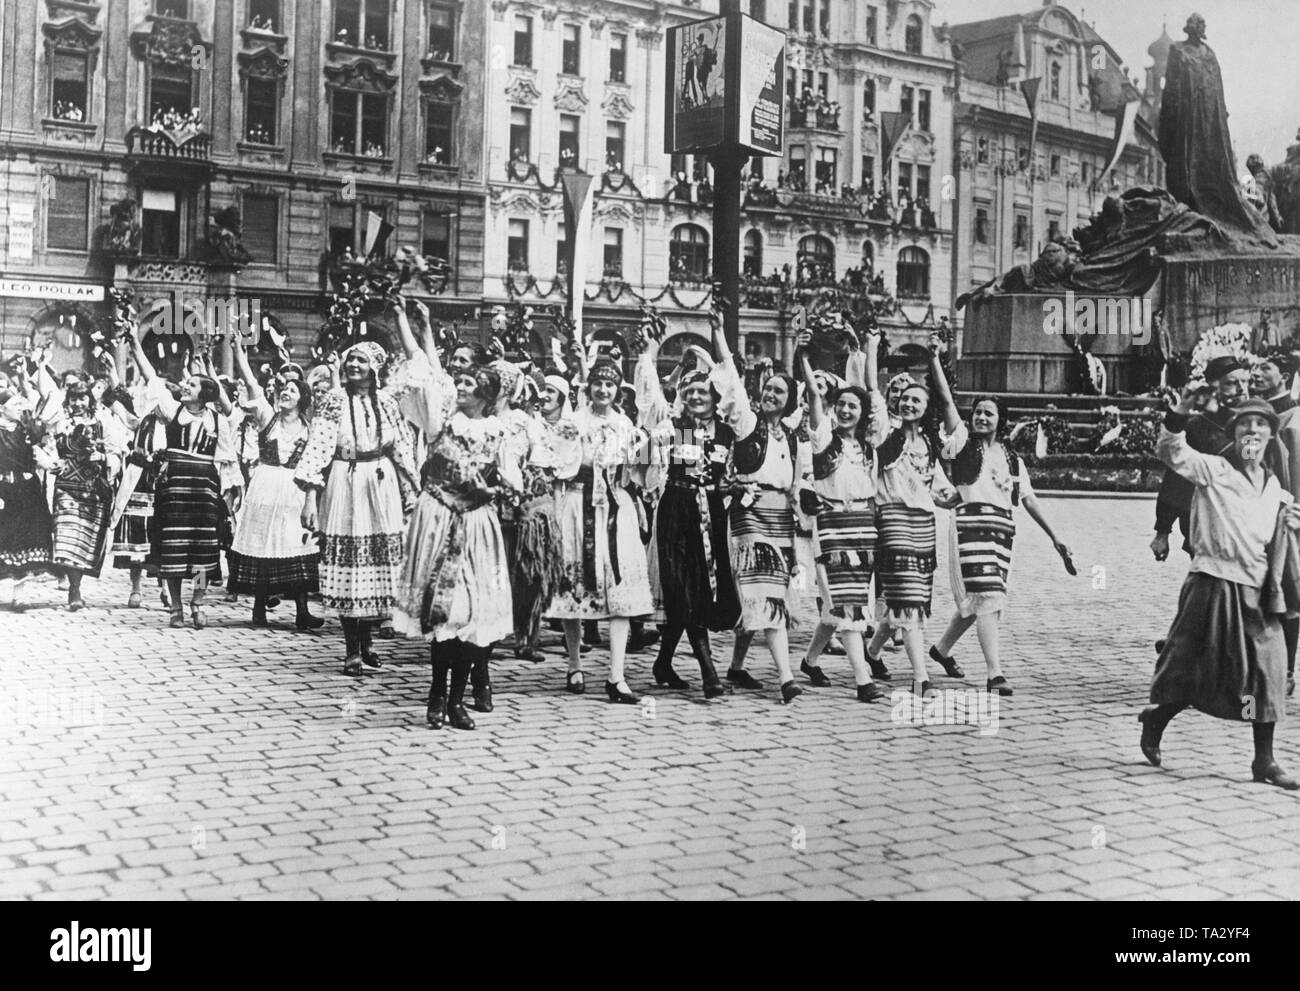 Moravian country girls in traditional costumes at the Sokol Congress in Prague. The girls greet Czechoslovak President Tomas Garrigue Masaryk. A parade takes place in Jan Hus's honor on his birthday. In the background, the Jan Hus Memorial. - Stock Image